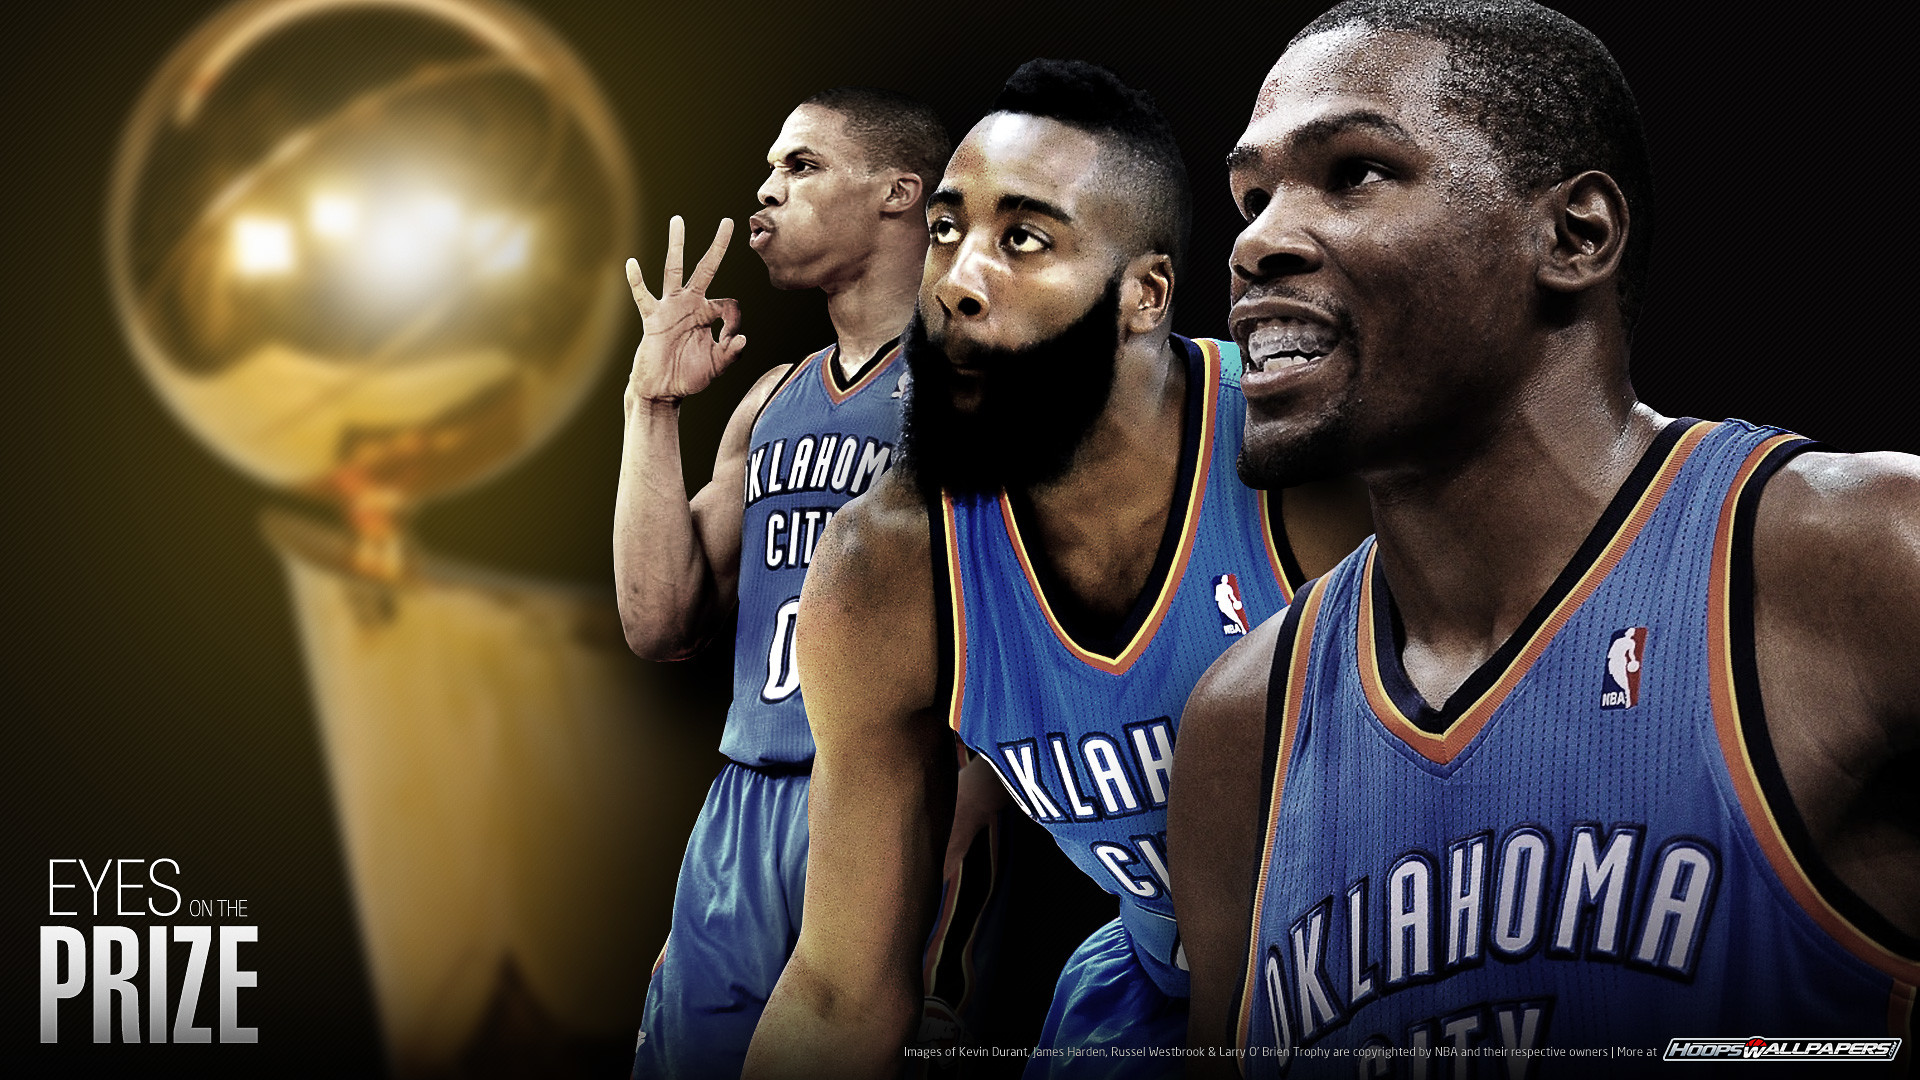 cheap for discount b6e75 92935 1920x1080 Oklahoma Thunder 2012 wallpaper. OKC Thunder (Kevin Durant, James  Harden and Russel